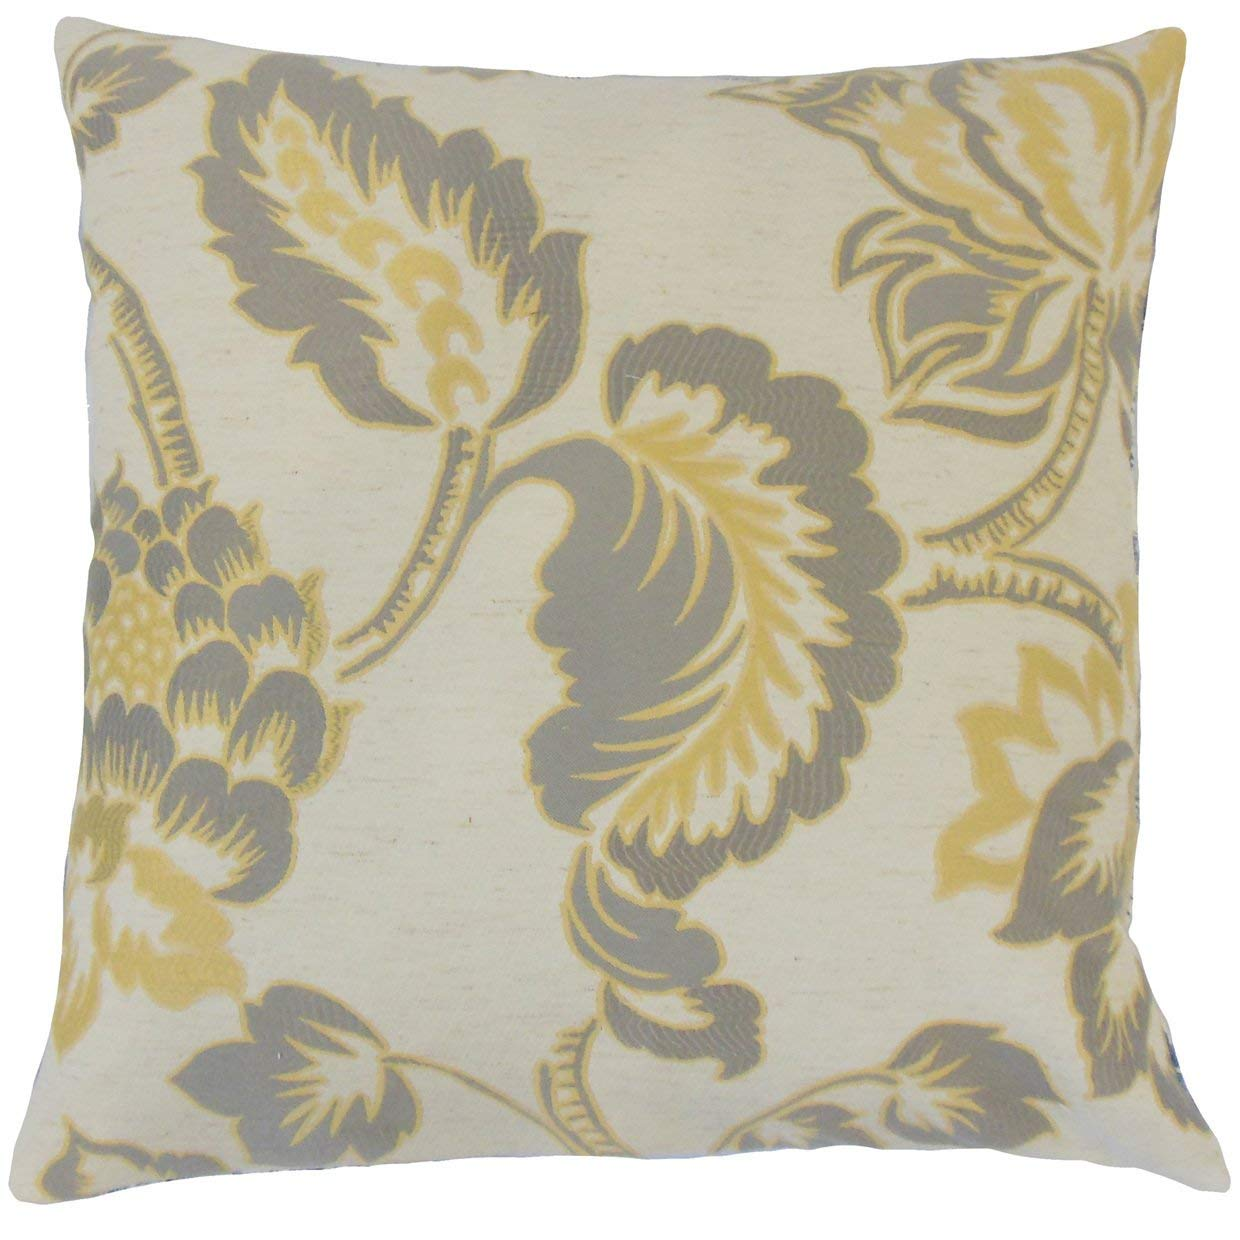 The Pillow Collection Wyldia Floral Lemon Grass Down Filled Throw Pillow